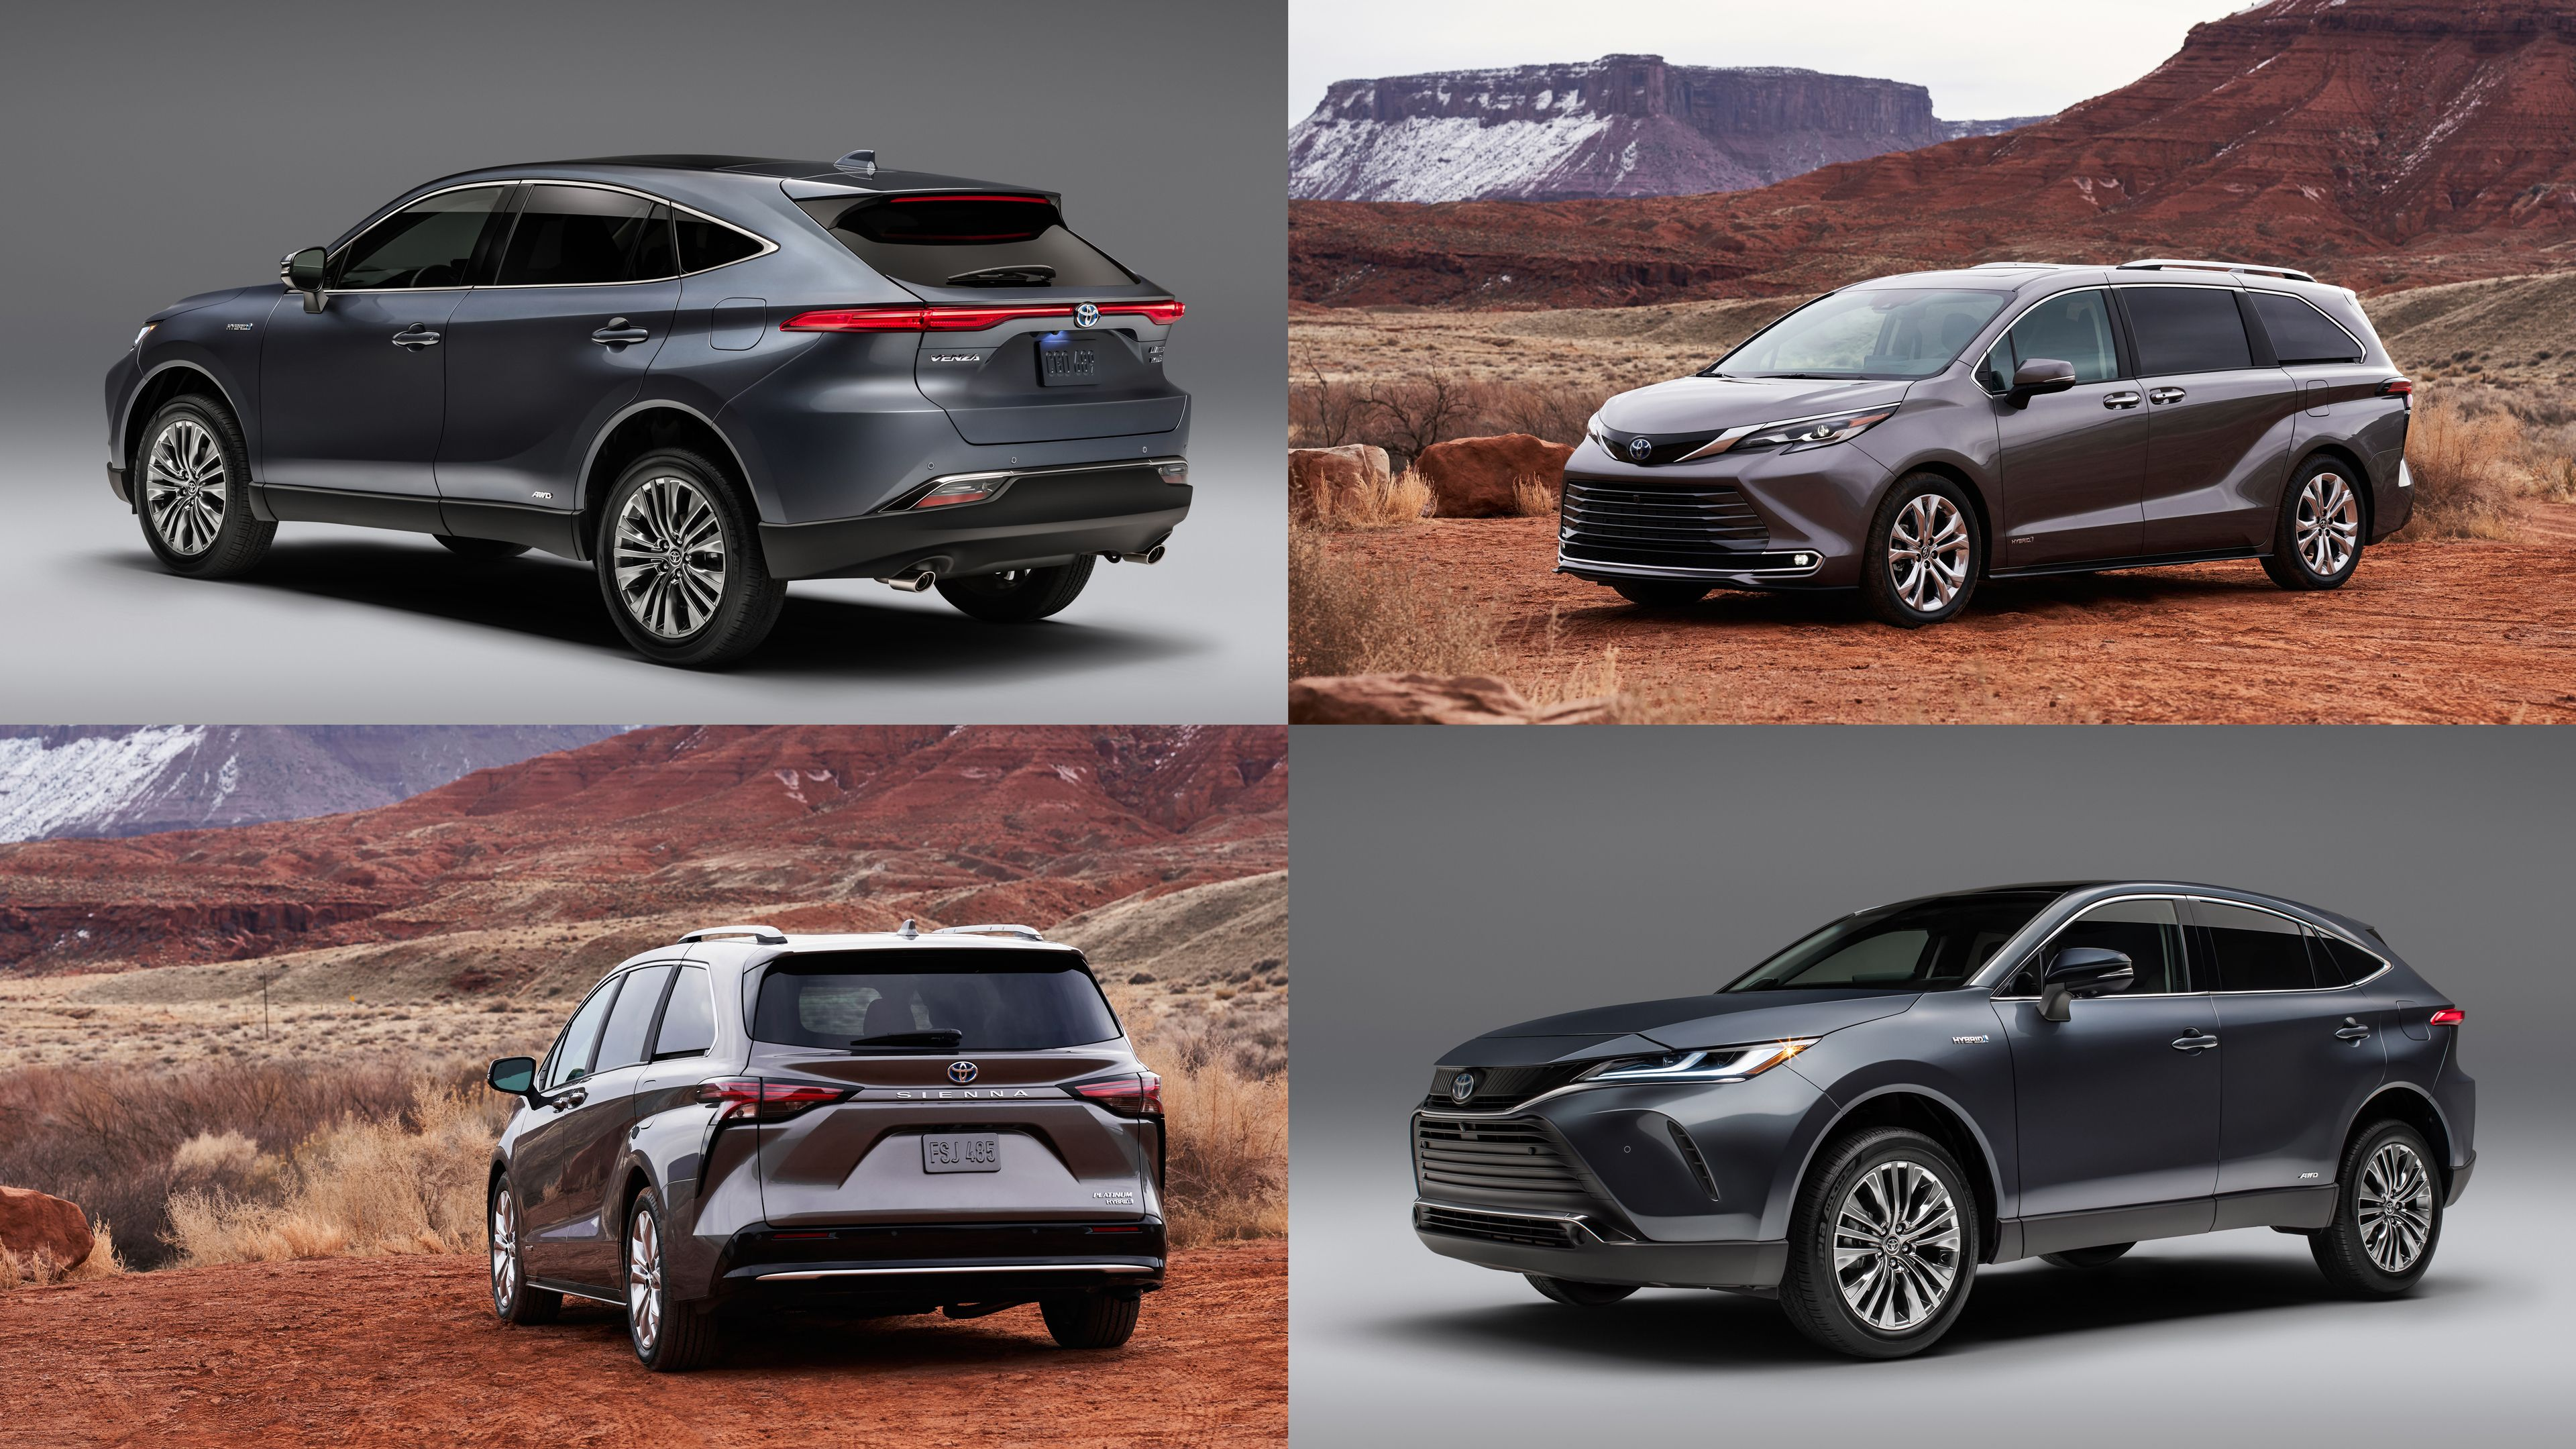 The Toyota Venza Returns For 2021 And Sienna Gets A Redesign